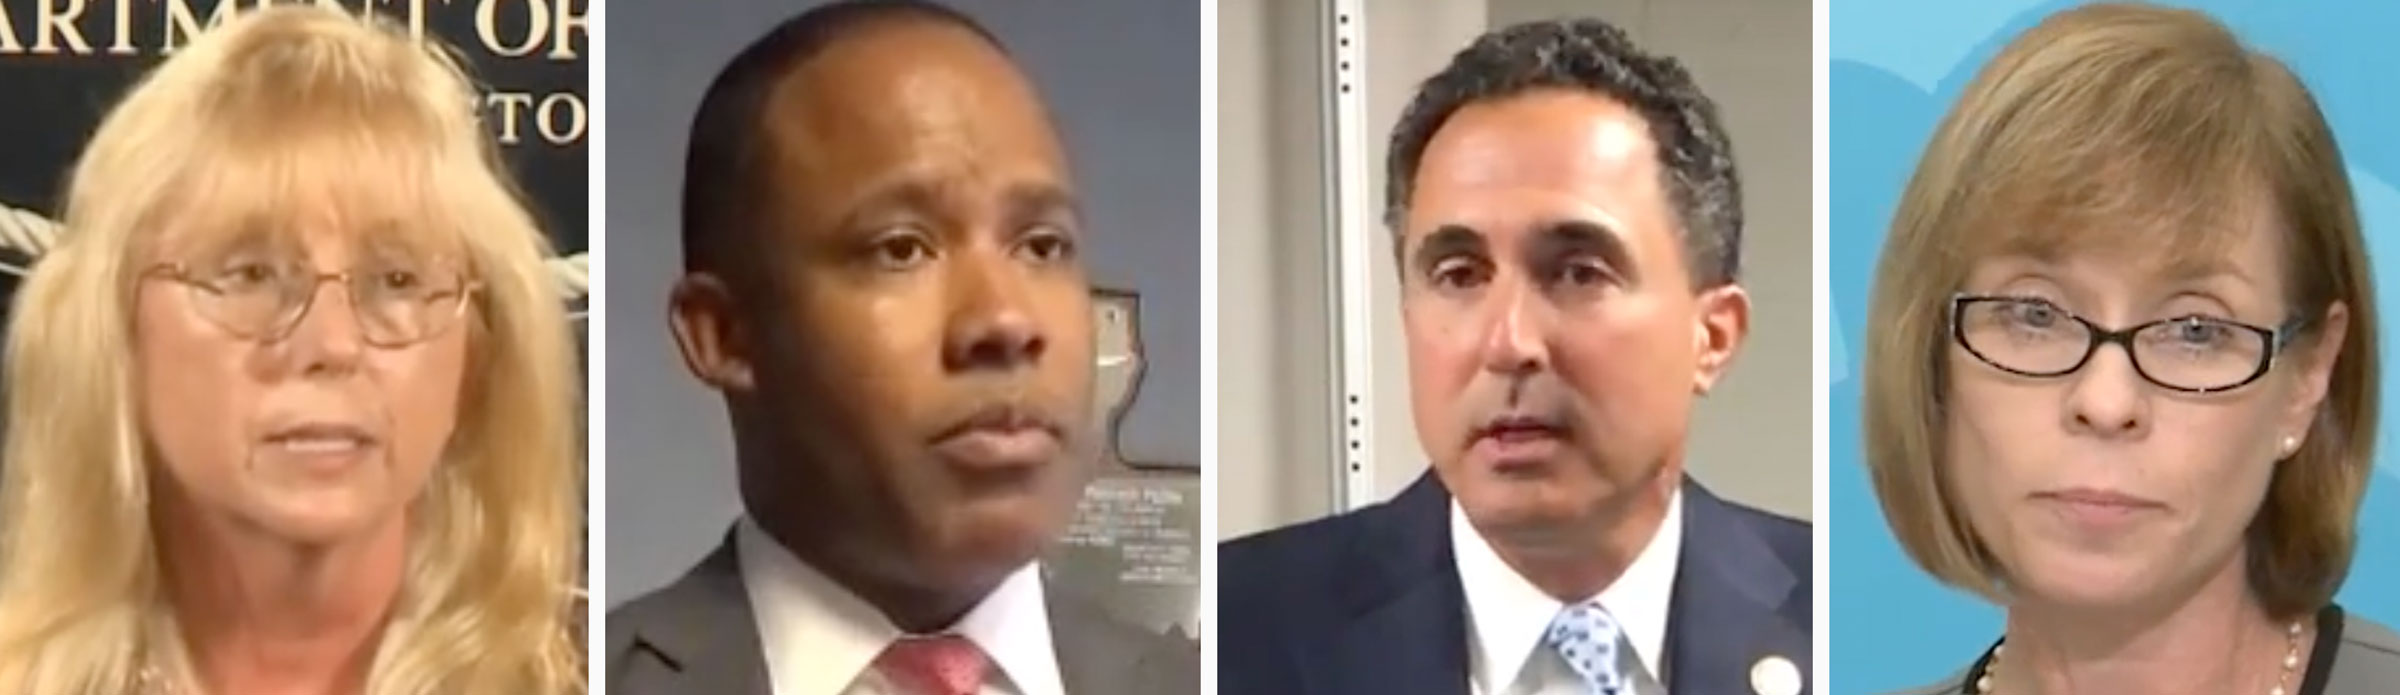 Former U.S. attorneys, from left, Eileen Decker, Kenneth Polite Jr., Richard Hartunian and Carole Rendon could be attractive recruits for House Democrats in 2018. (Screenshots)